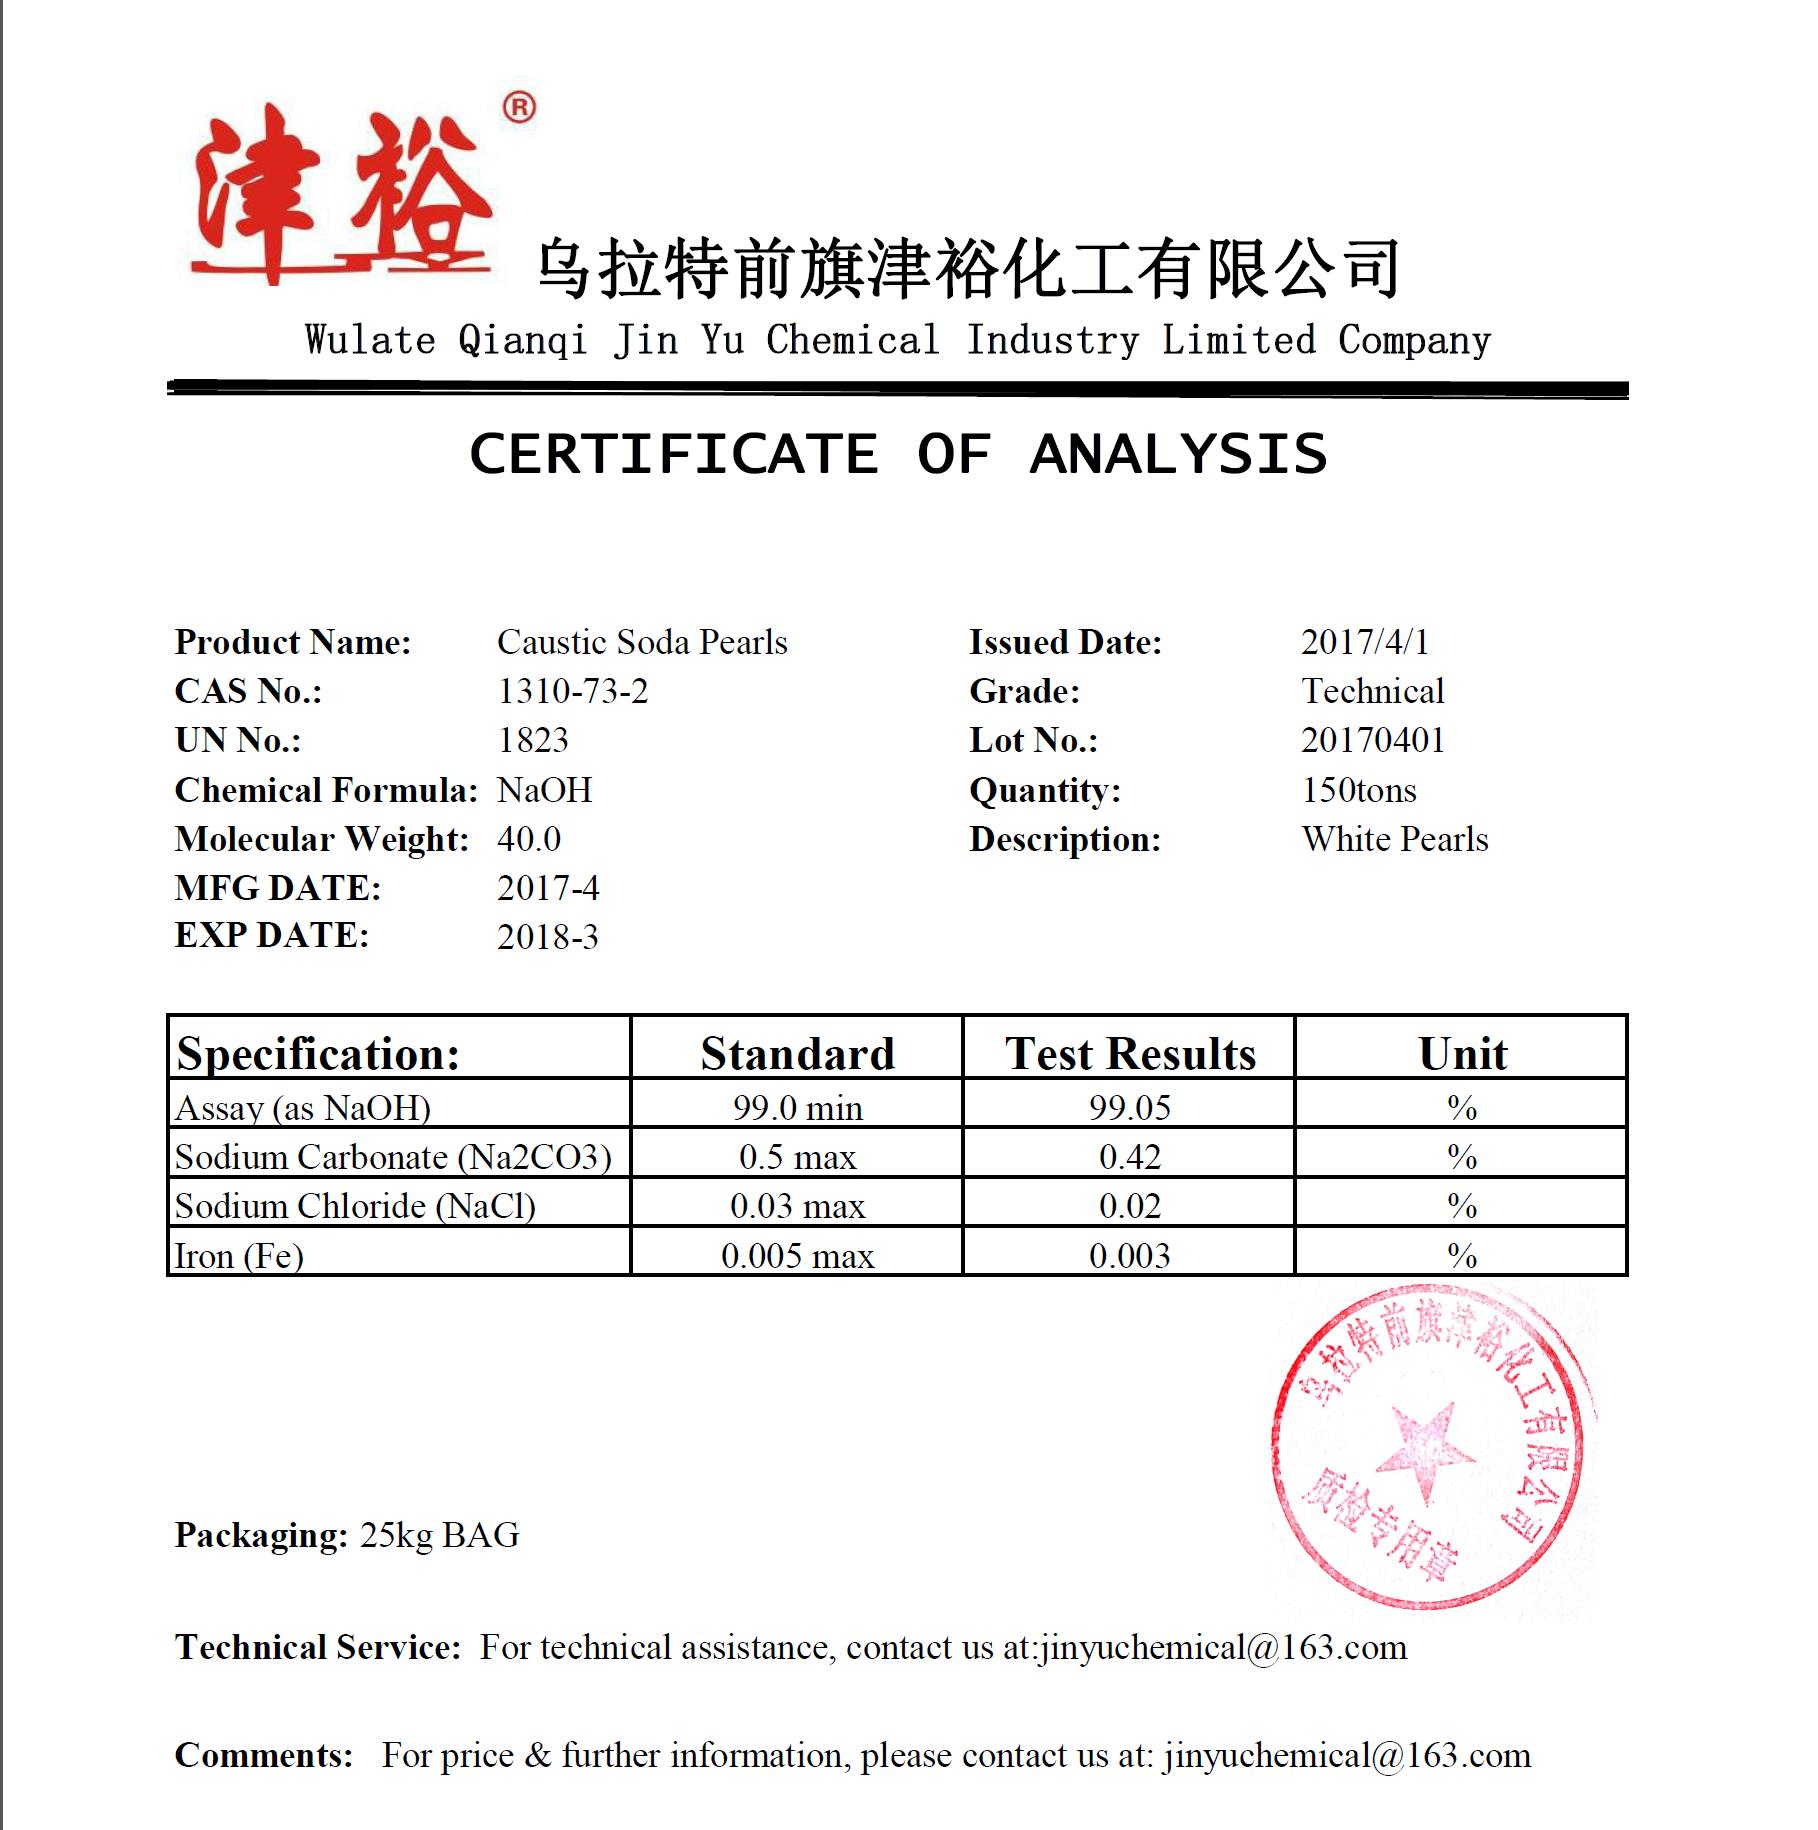 99% Caustic Soda Pearls - Test Certification